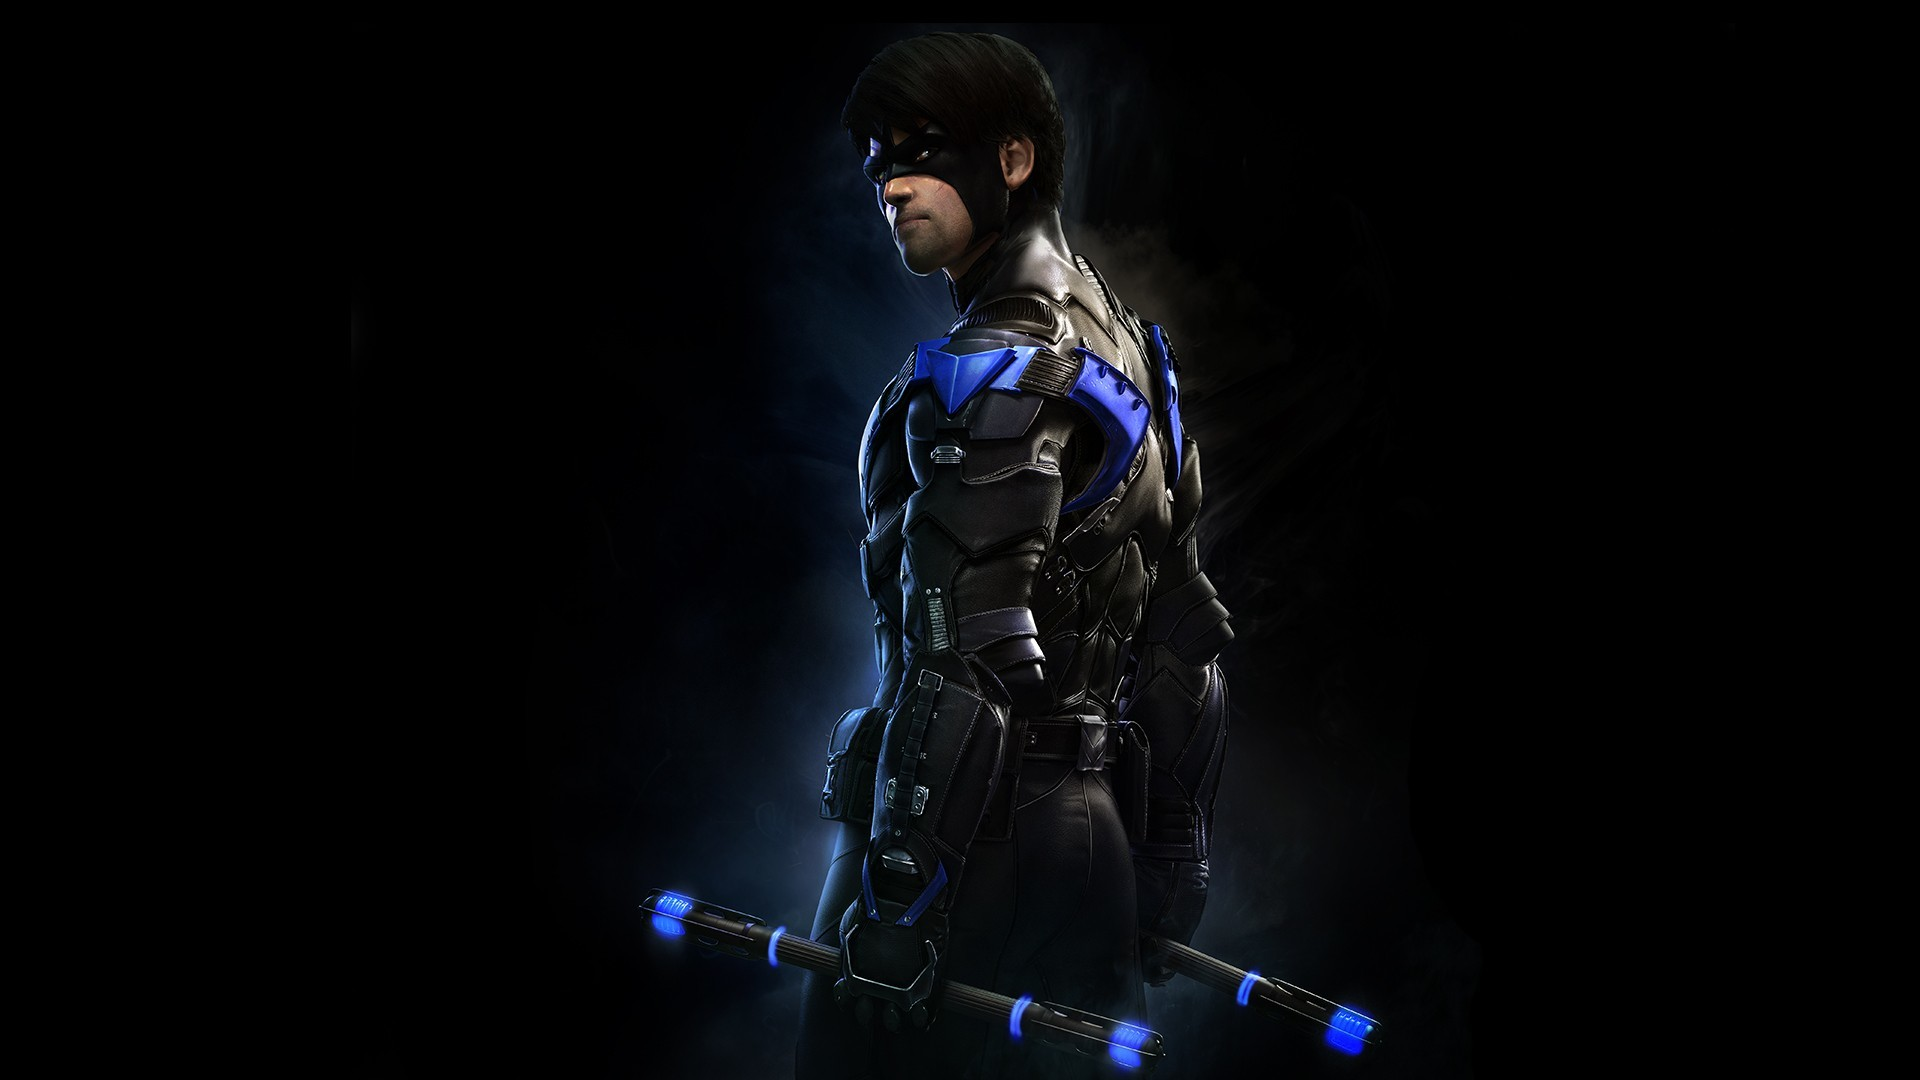 1920x1080 Video Game - Batman: Arkham Knight Nightwing Wallpaper